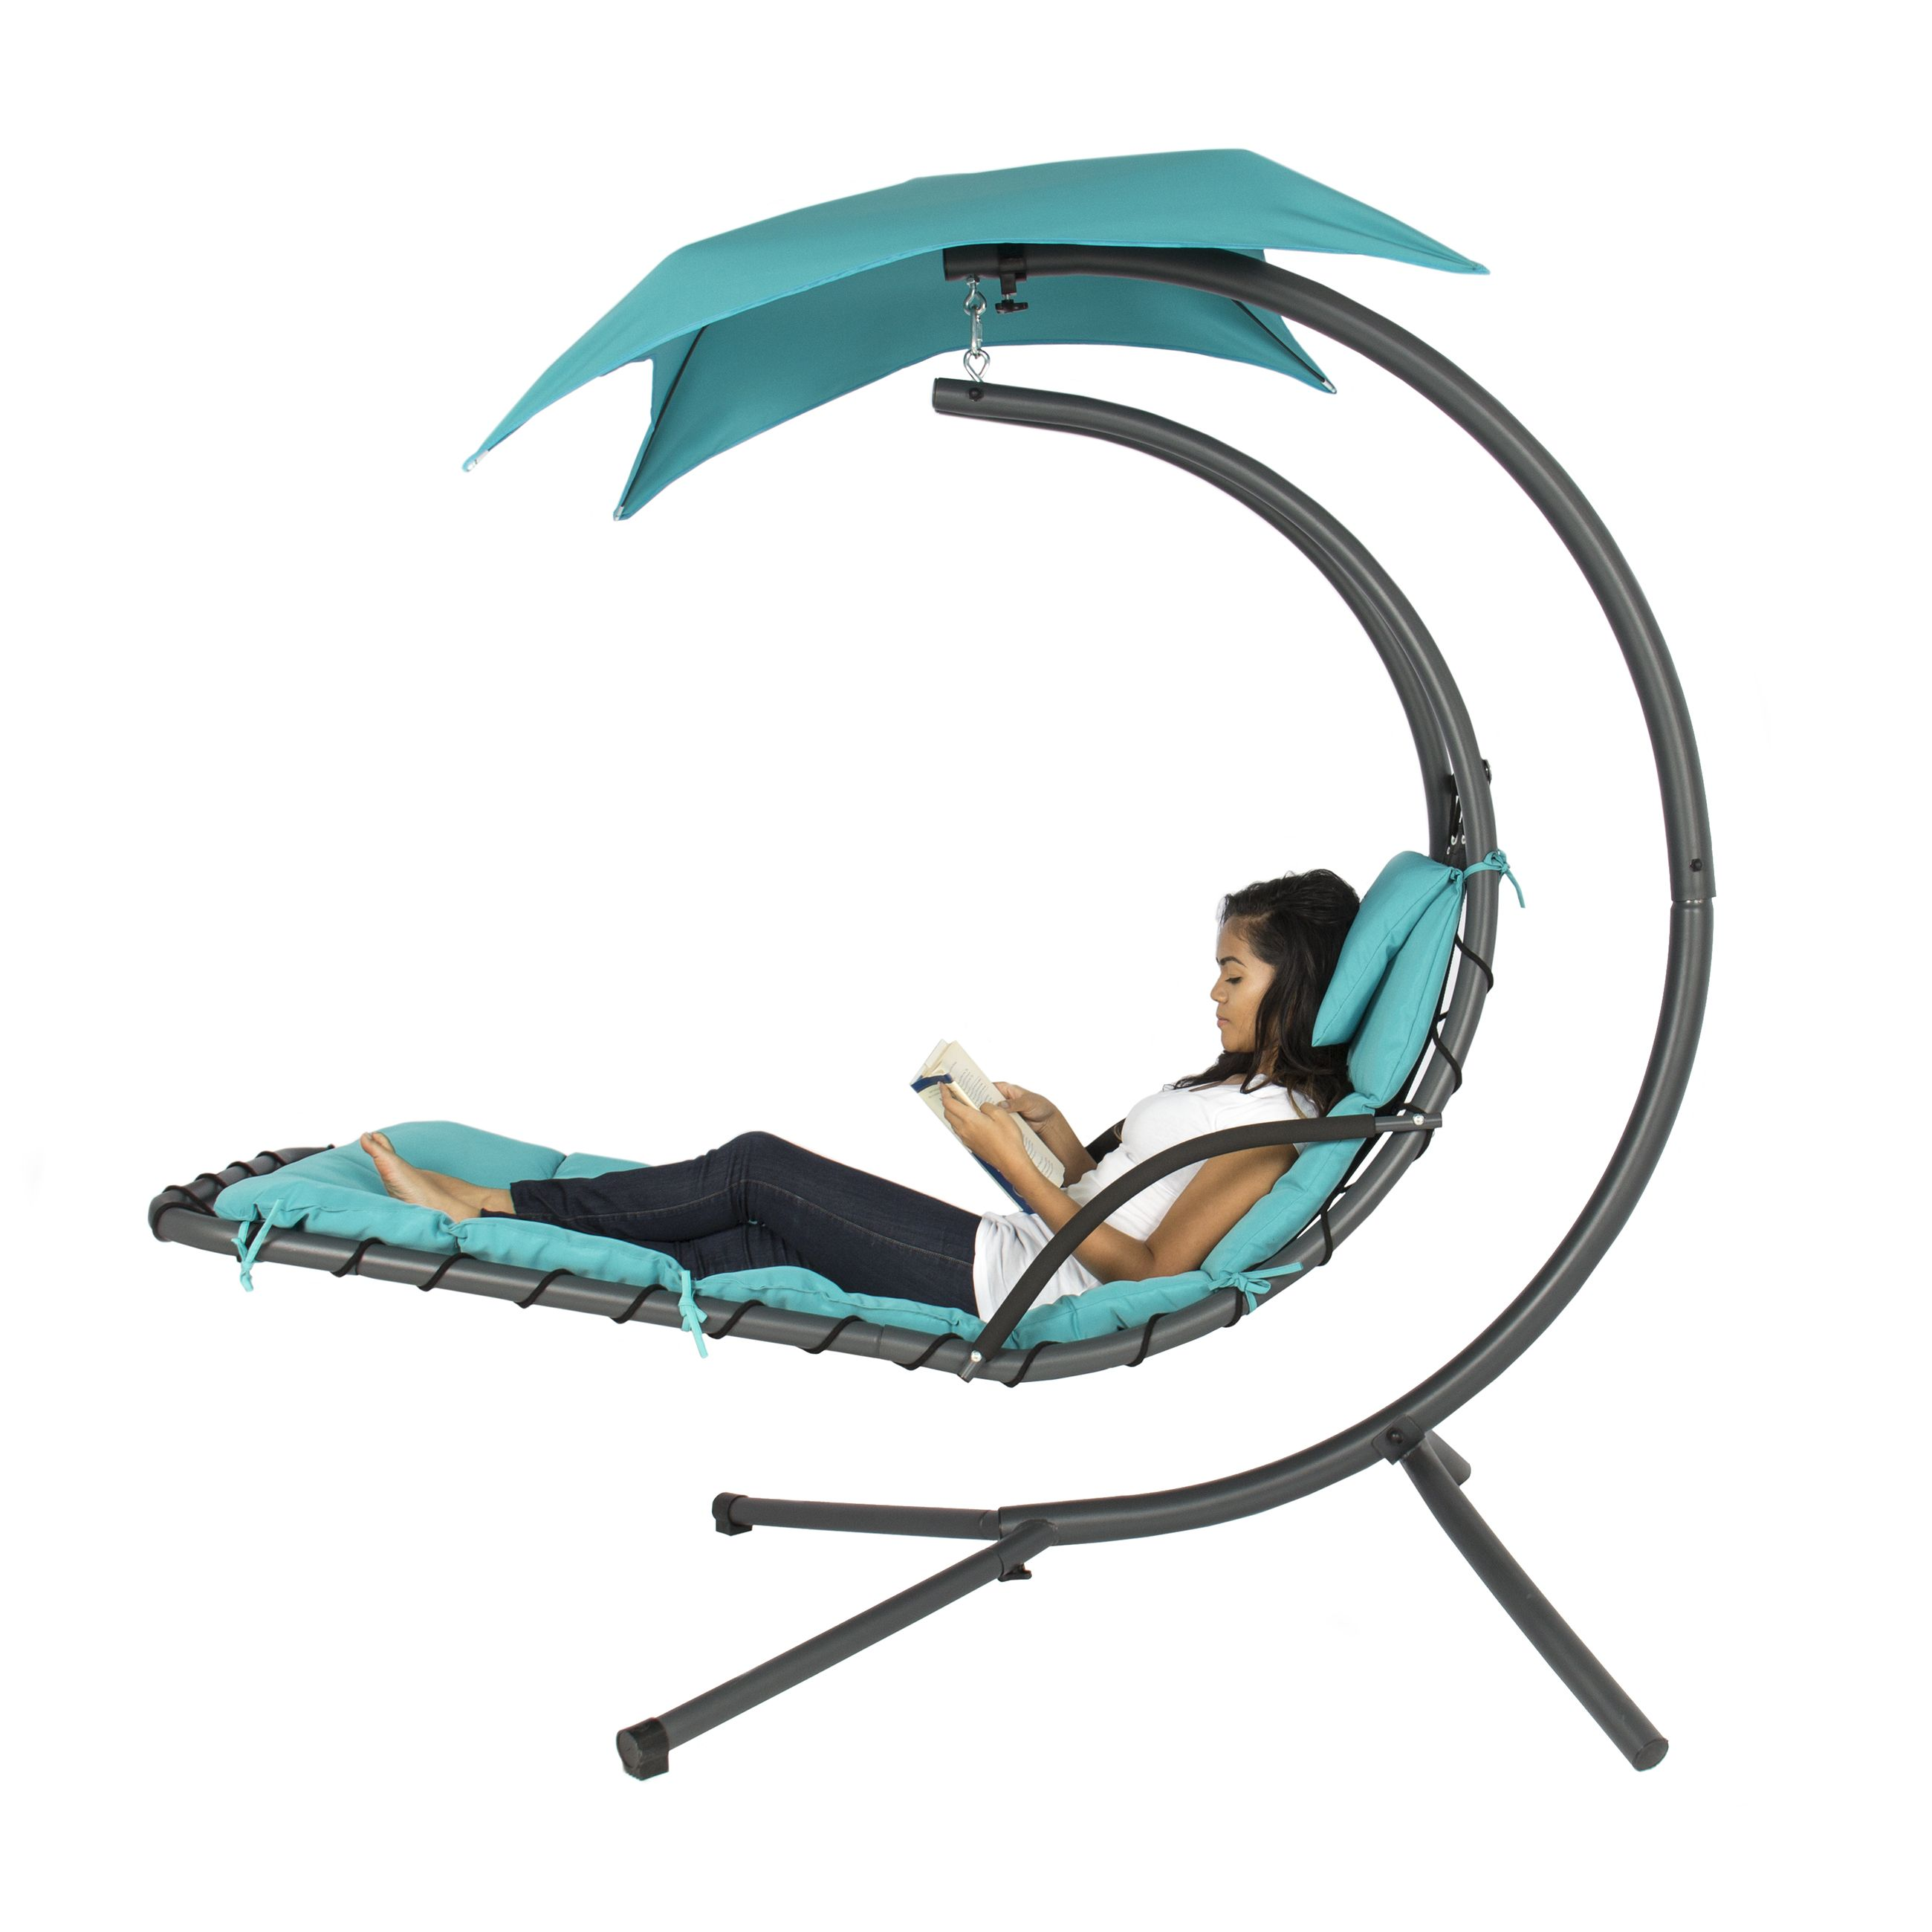 Hanging Chaise Lounger Chair Arc Stand Air Porch Swing Hammock Chair Canopy Teal Walmart Com Hanging Lounge Chair Loungers Chair Hanging Hammock Chair